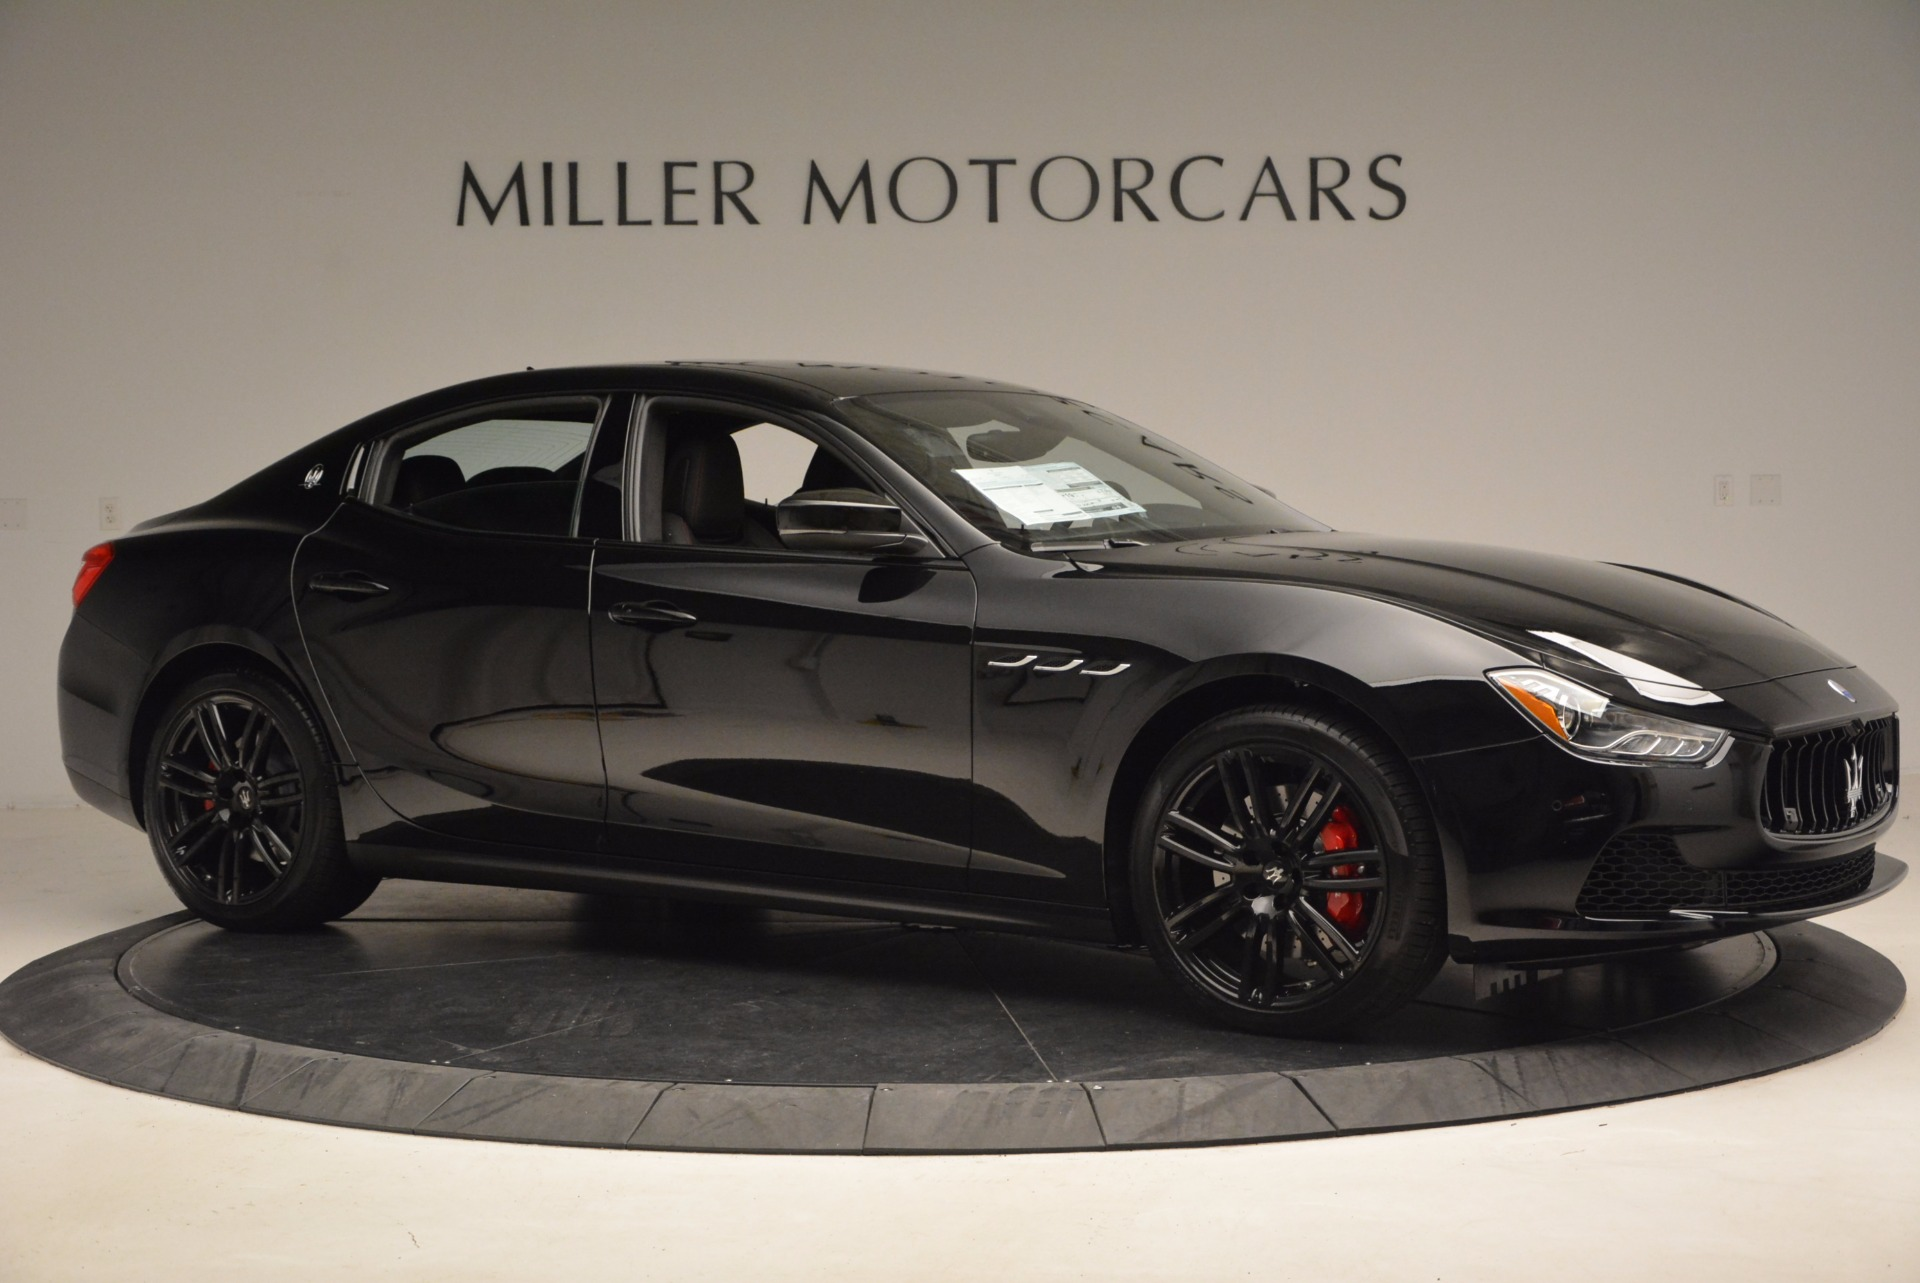 New 2017 Maserati Ghibli Nerissimo Edition S Q4 For Sale In Westport, CT 1420_p10